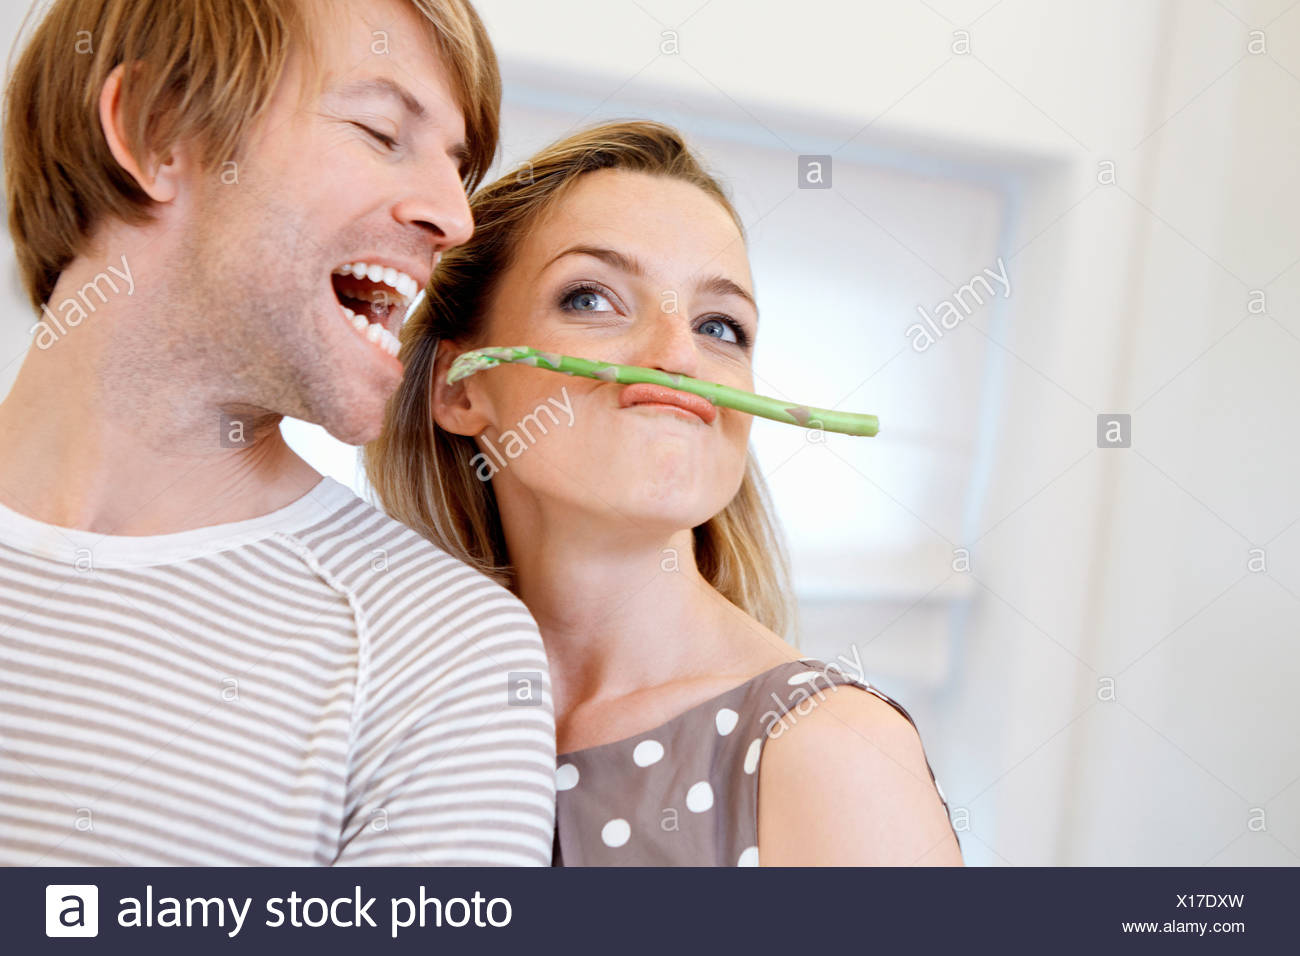 Woman with asparagus moustache - Stock Image